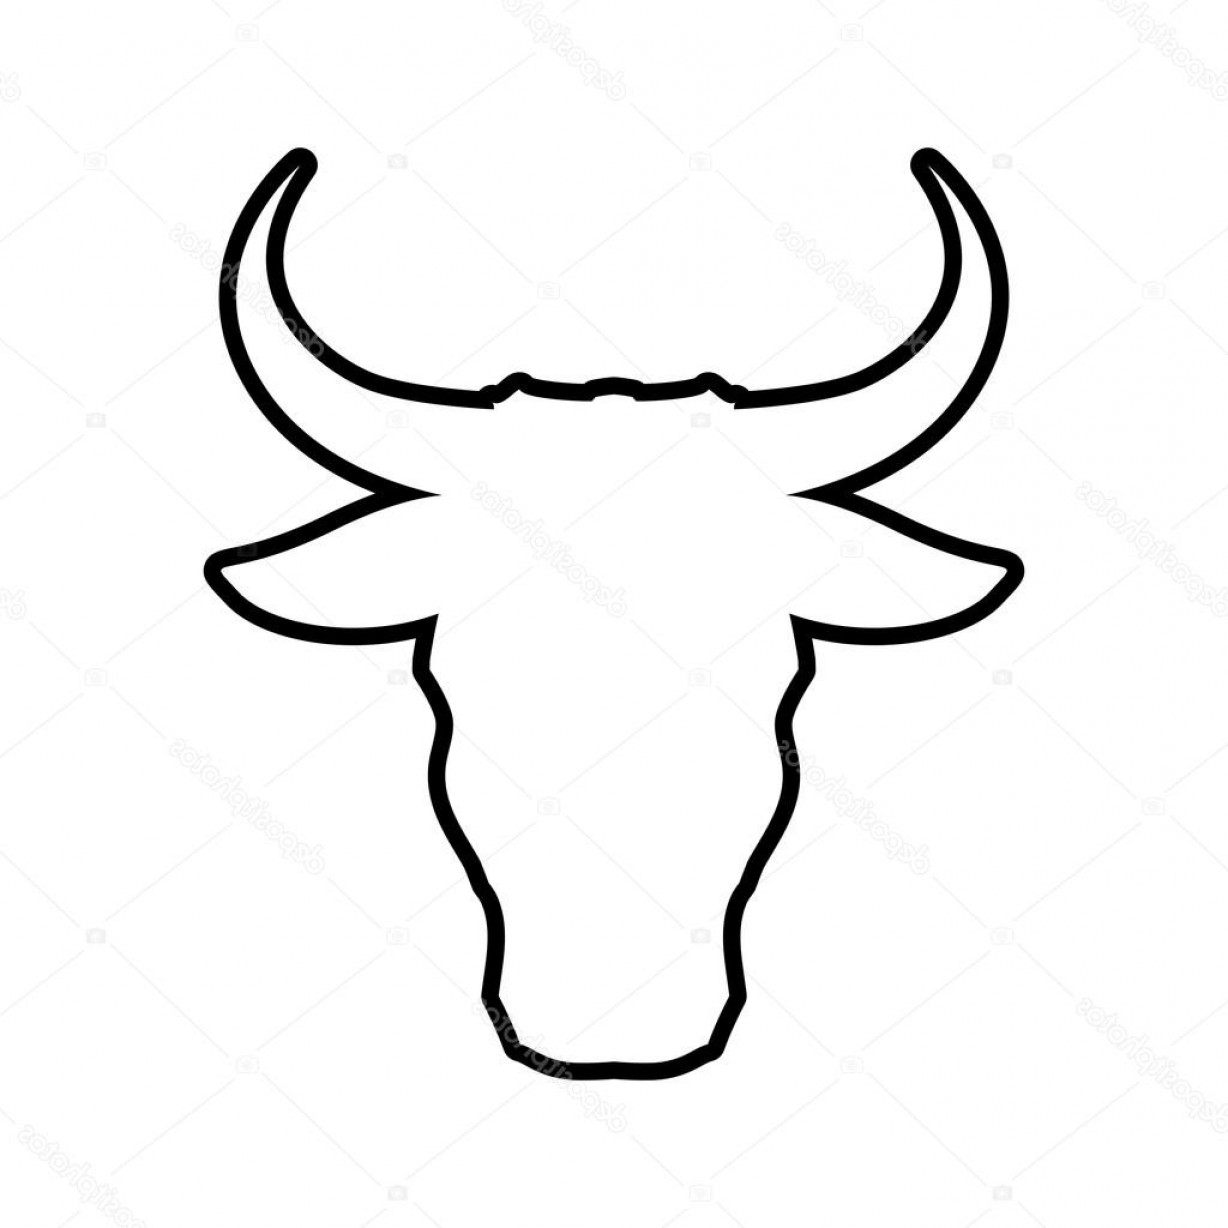 1228x1228 Stock Illustration Bull Horn Animal Silhouette Farm Soidergi